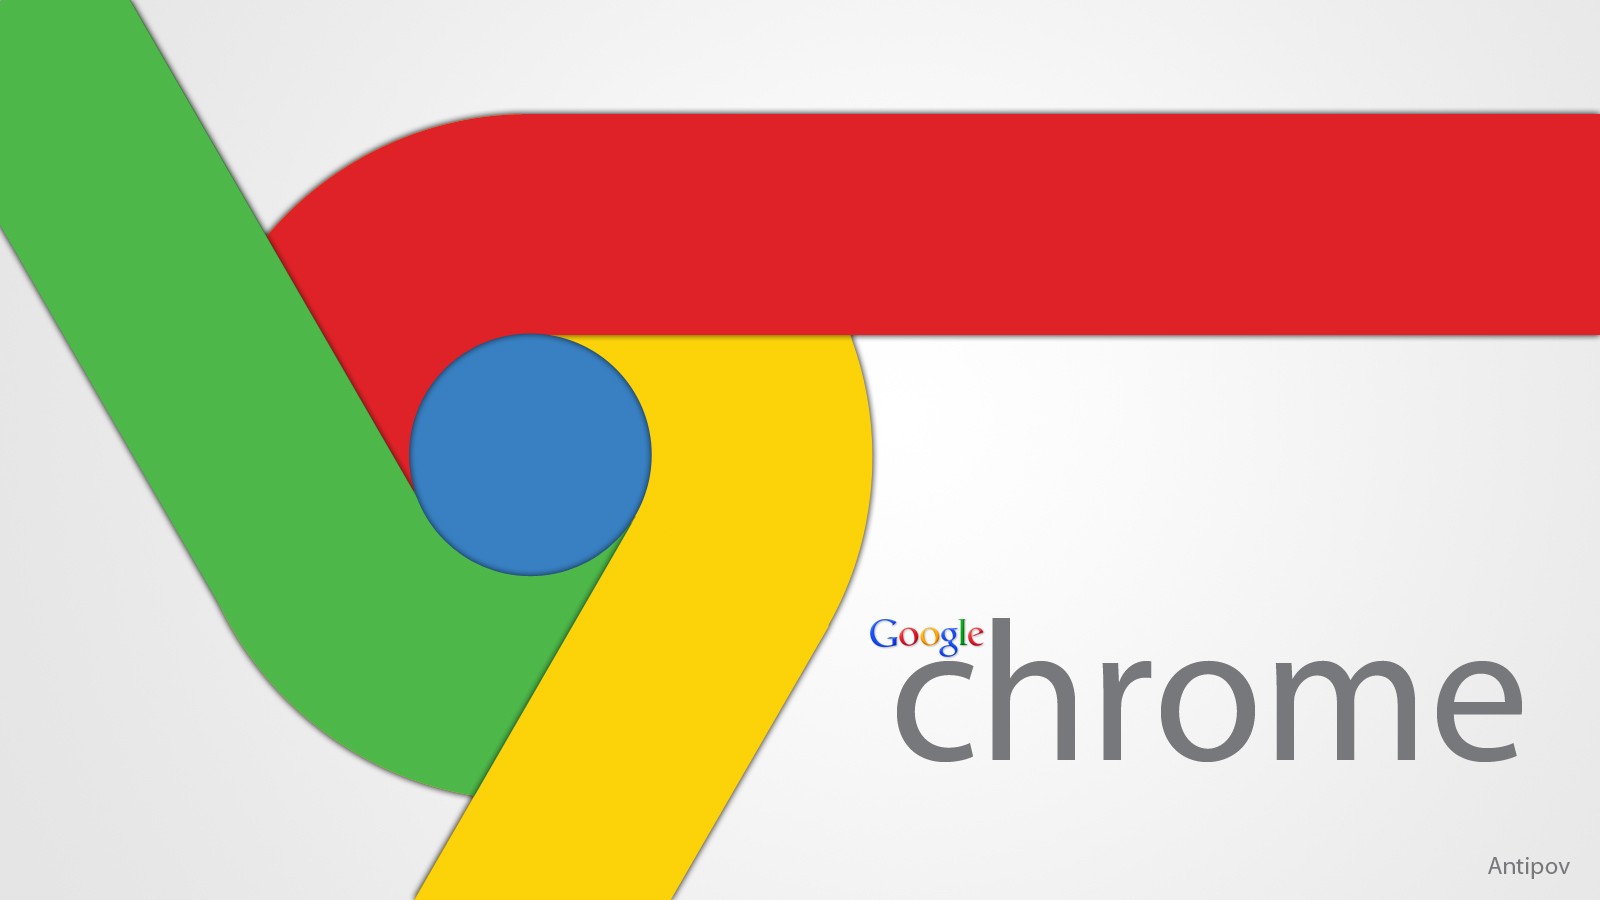 http://dl.247-365.ir/amozesh/software/chrome_history_clear/Chrome_History_Clear_01.jpg